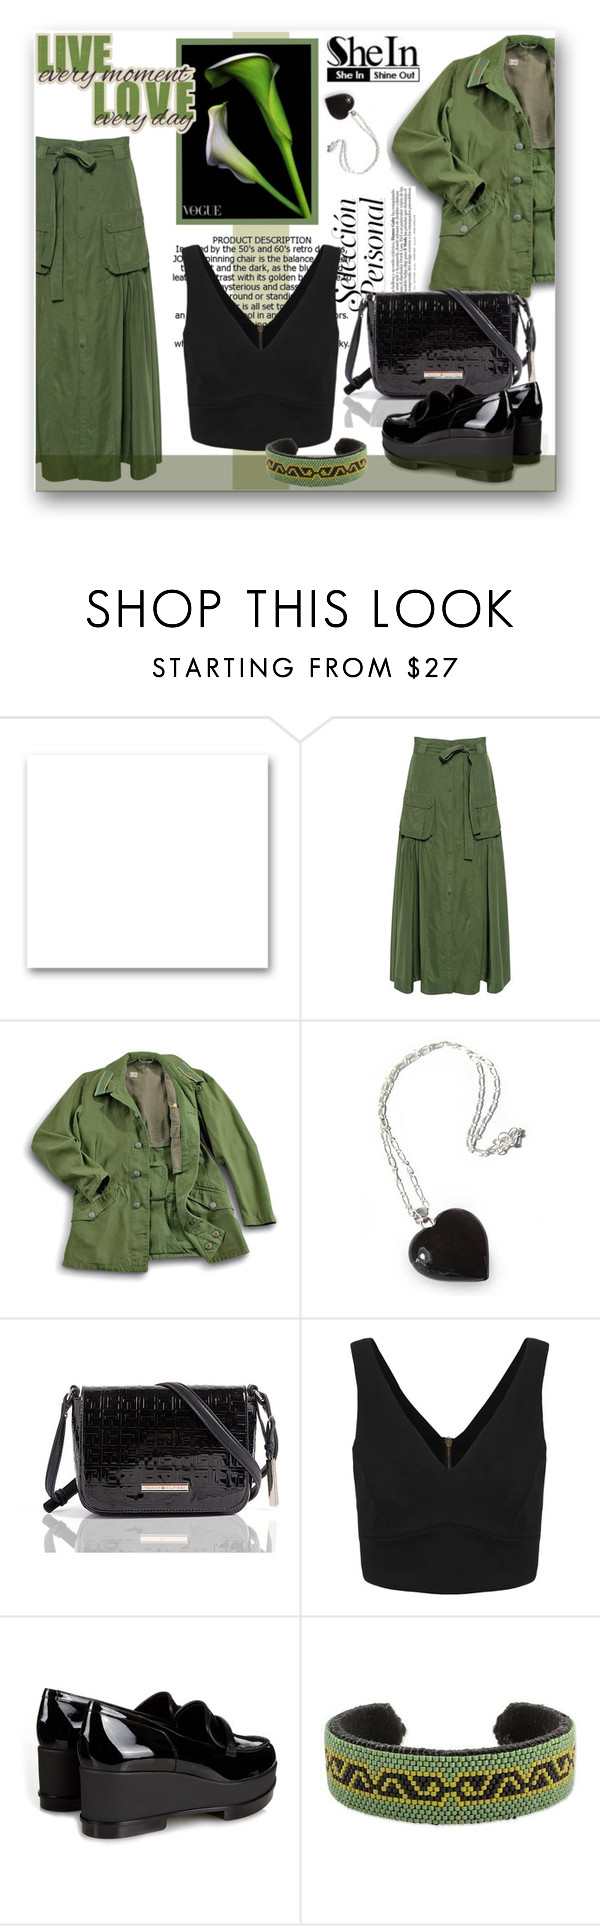 """""""SheIn-Black Top"""" by samketina ❤ liked on Polyvore featuring St. John, Marissa Webb, NOVICA, Tommy Hilfiger and Robert Clergerie"""